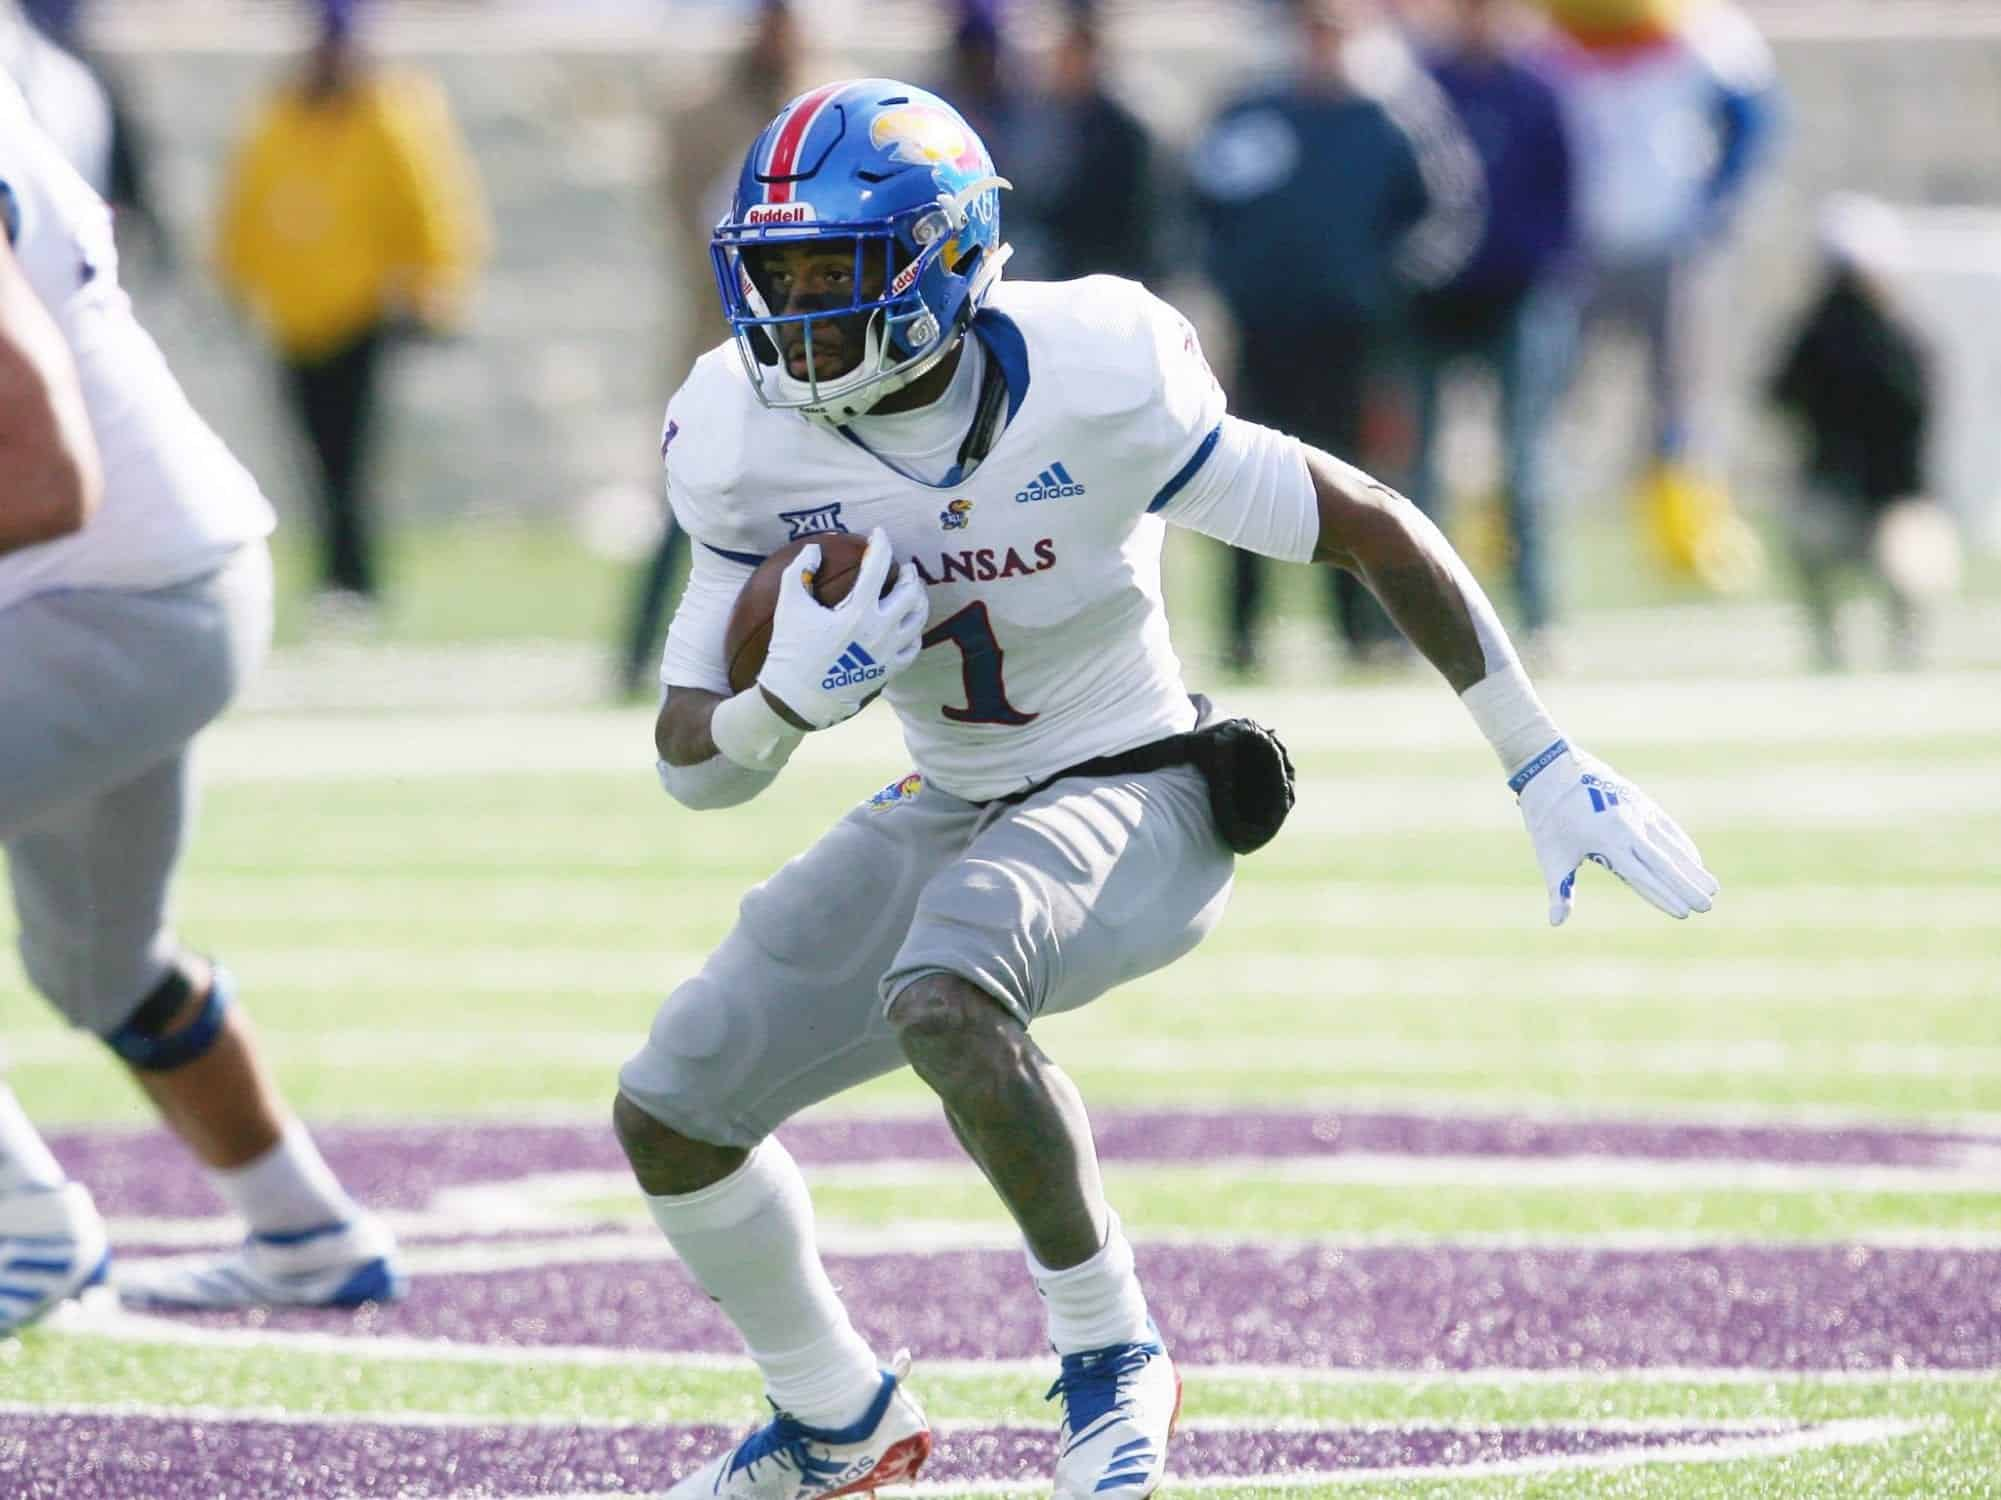 Best Running Back In The Nfl 2021 2021 NFL Draft: Kansas running back Pooka Williams is a top sleeper